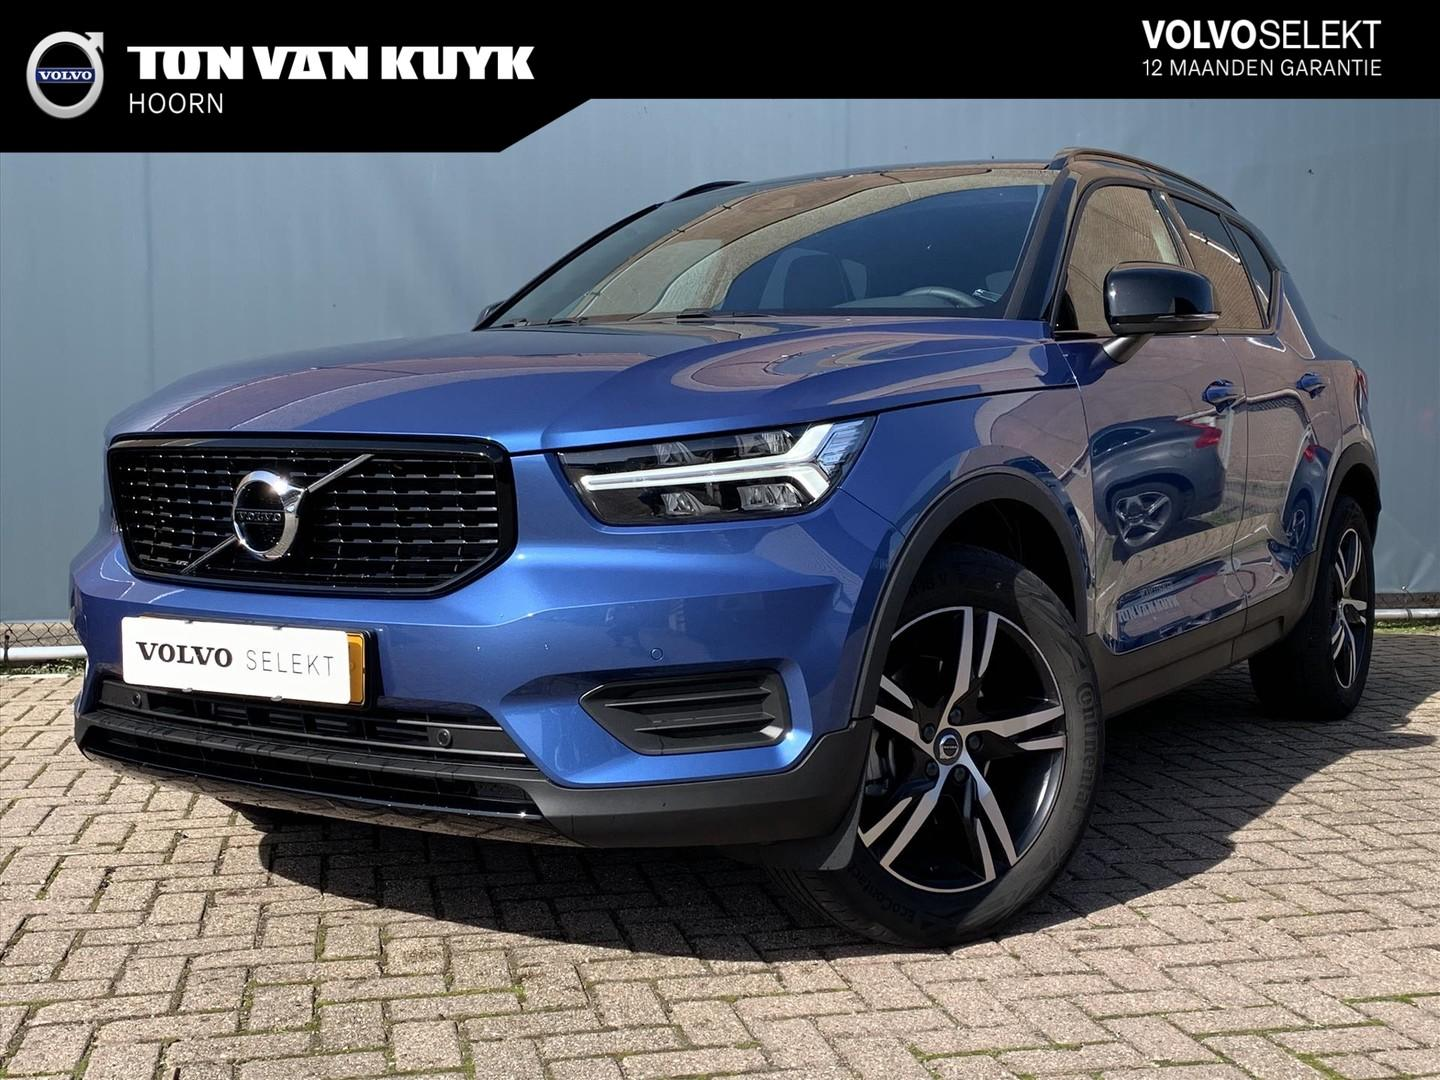 Volvo Xc40 T3 163pk geartronic r-design intellisafe